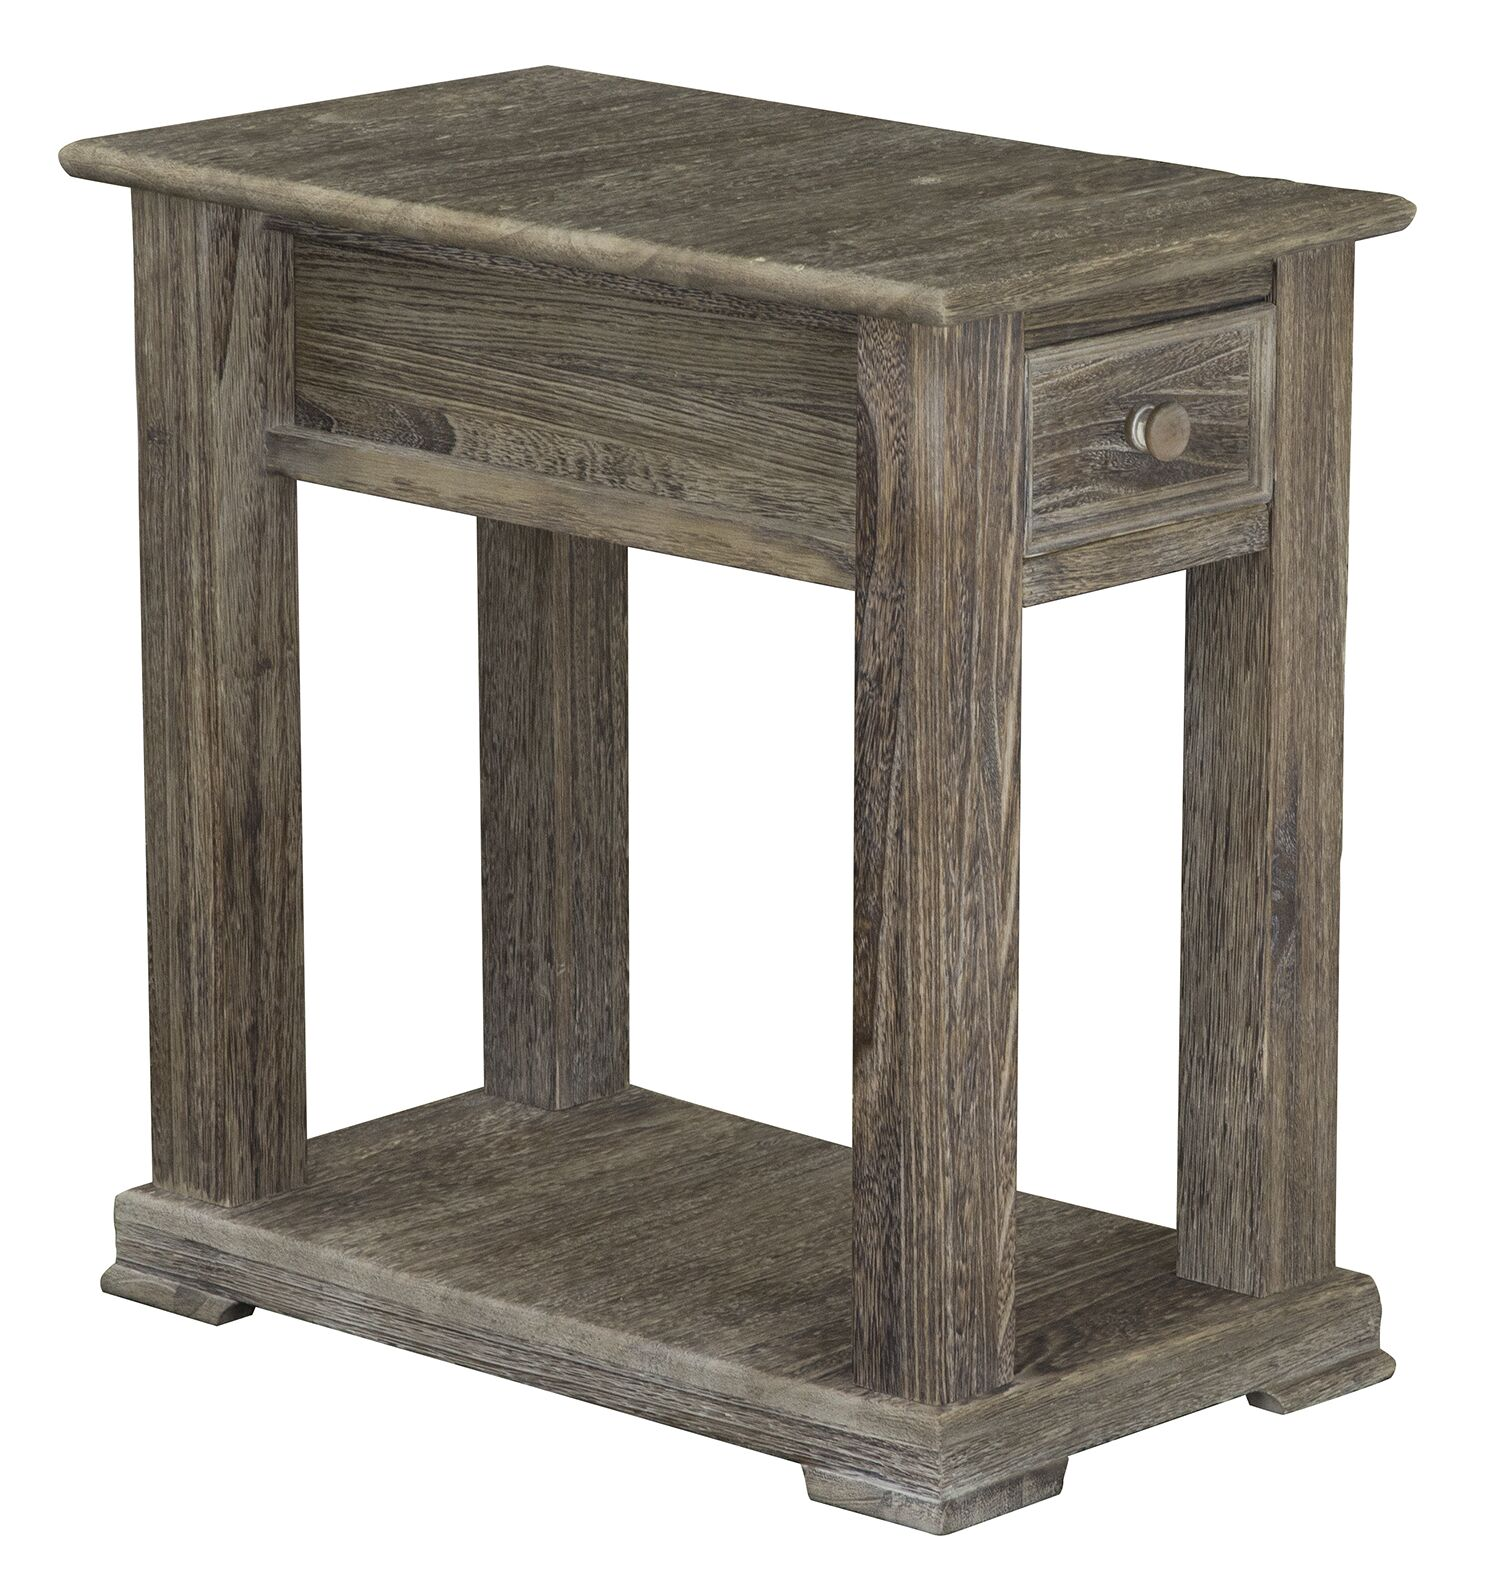 Zosia Chairside End Table